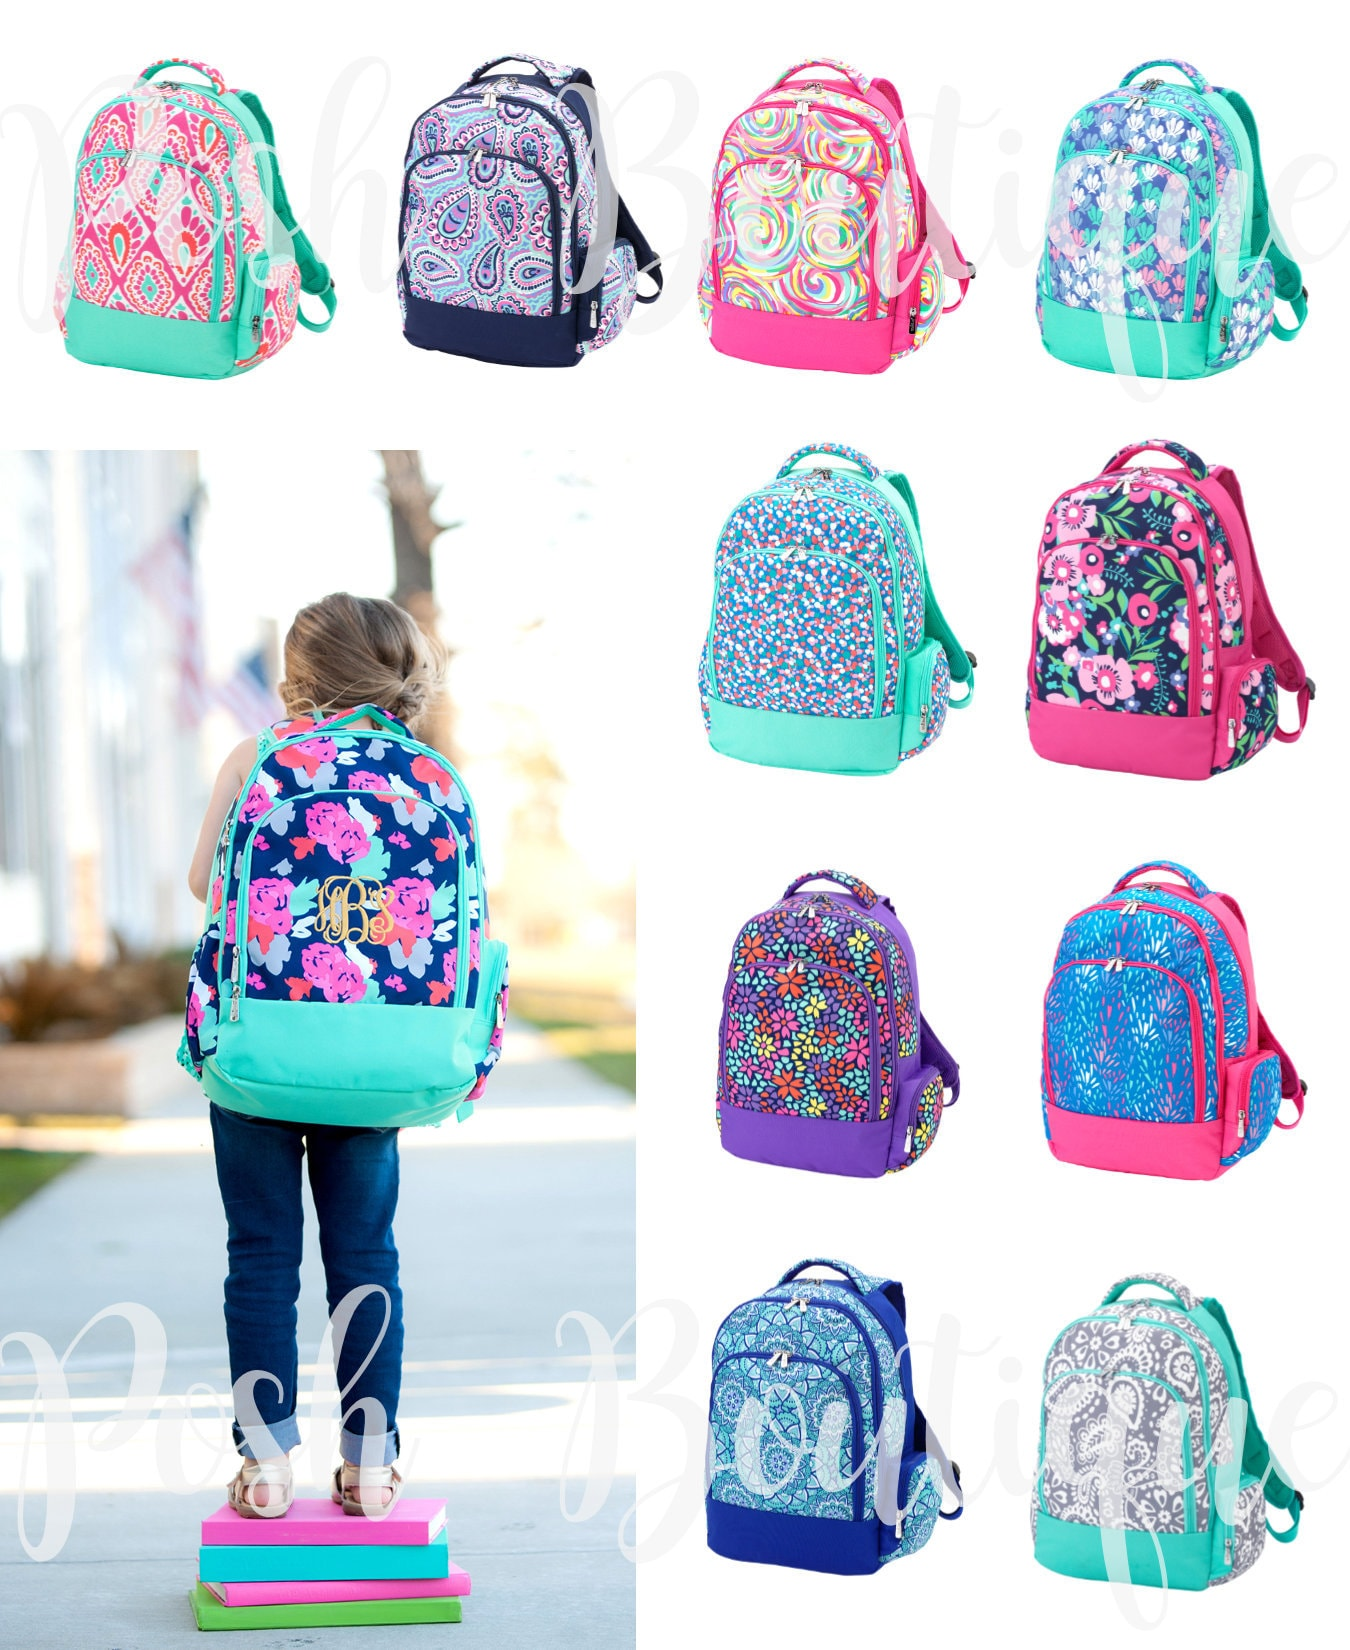 977162290a6e Monogrammed Backpacks